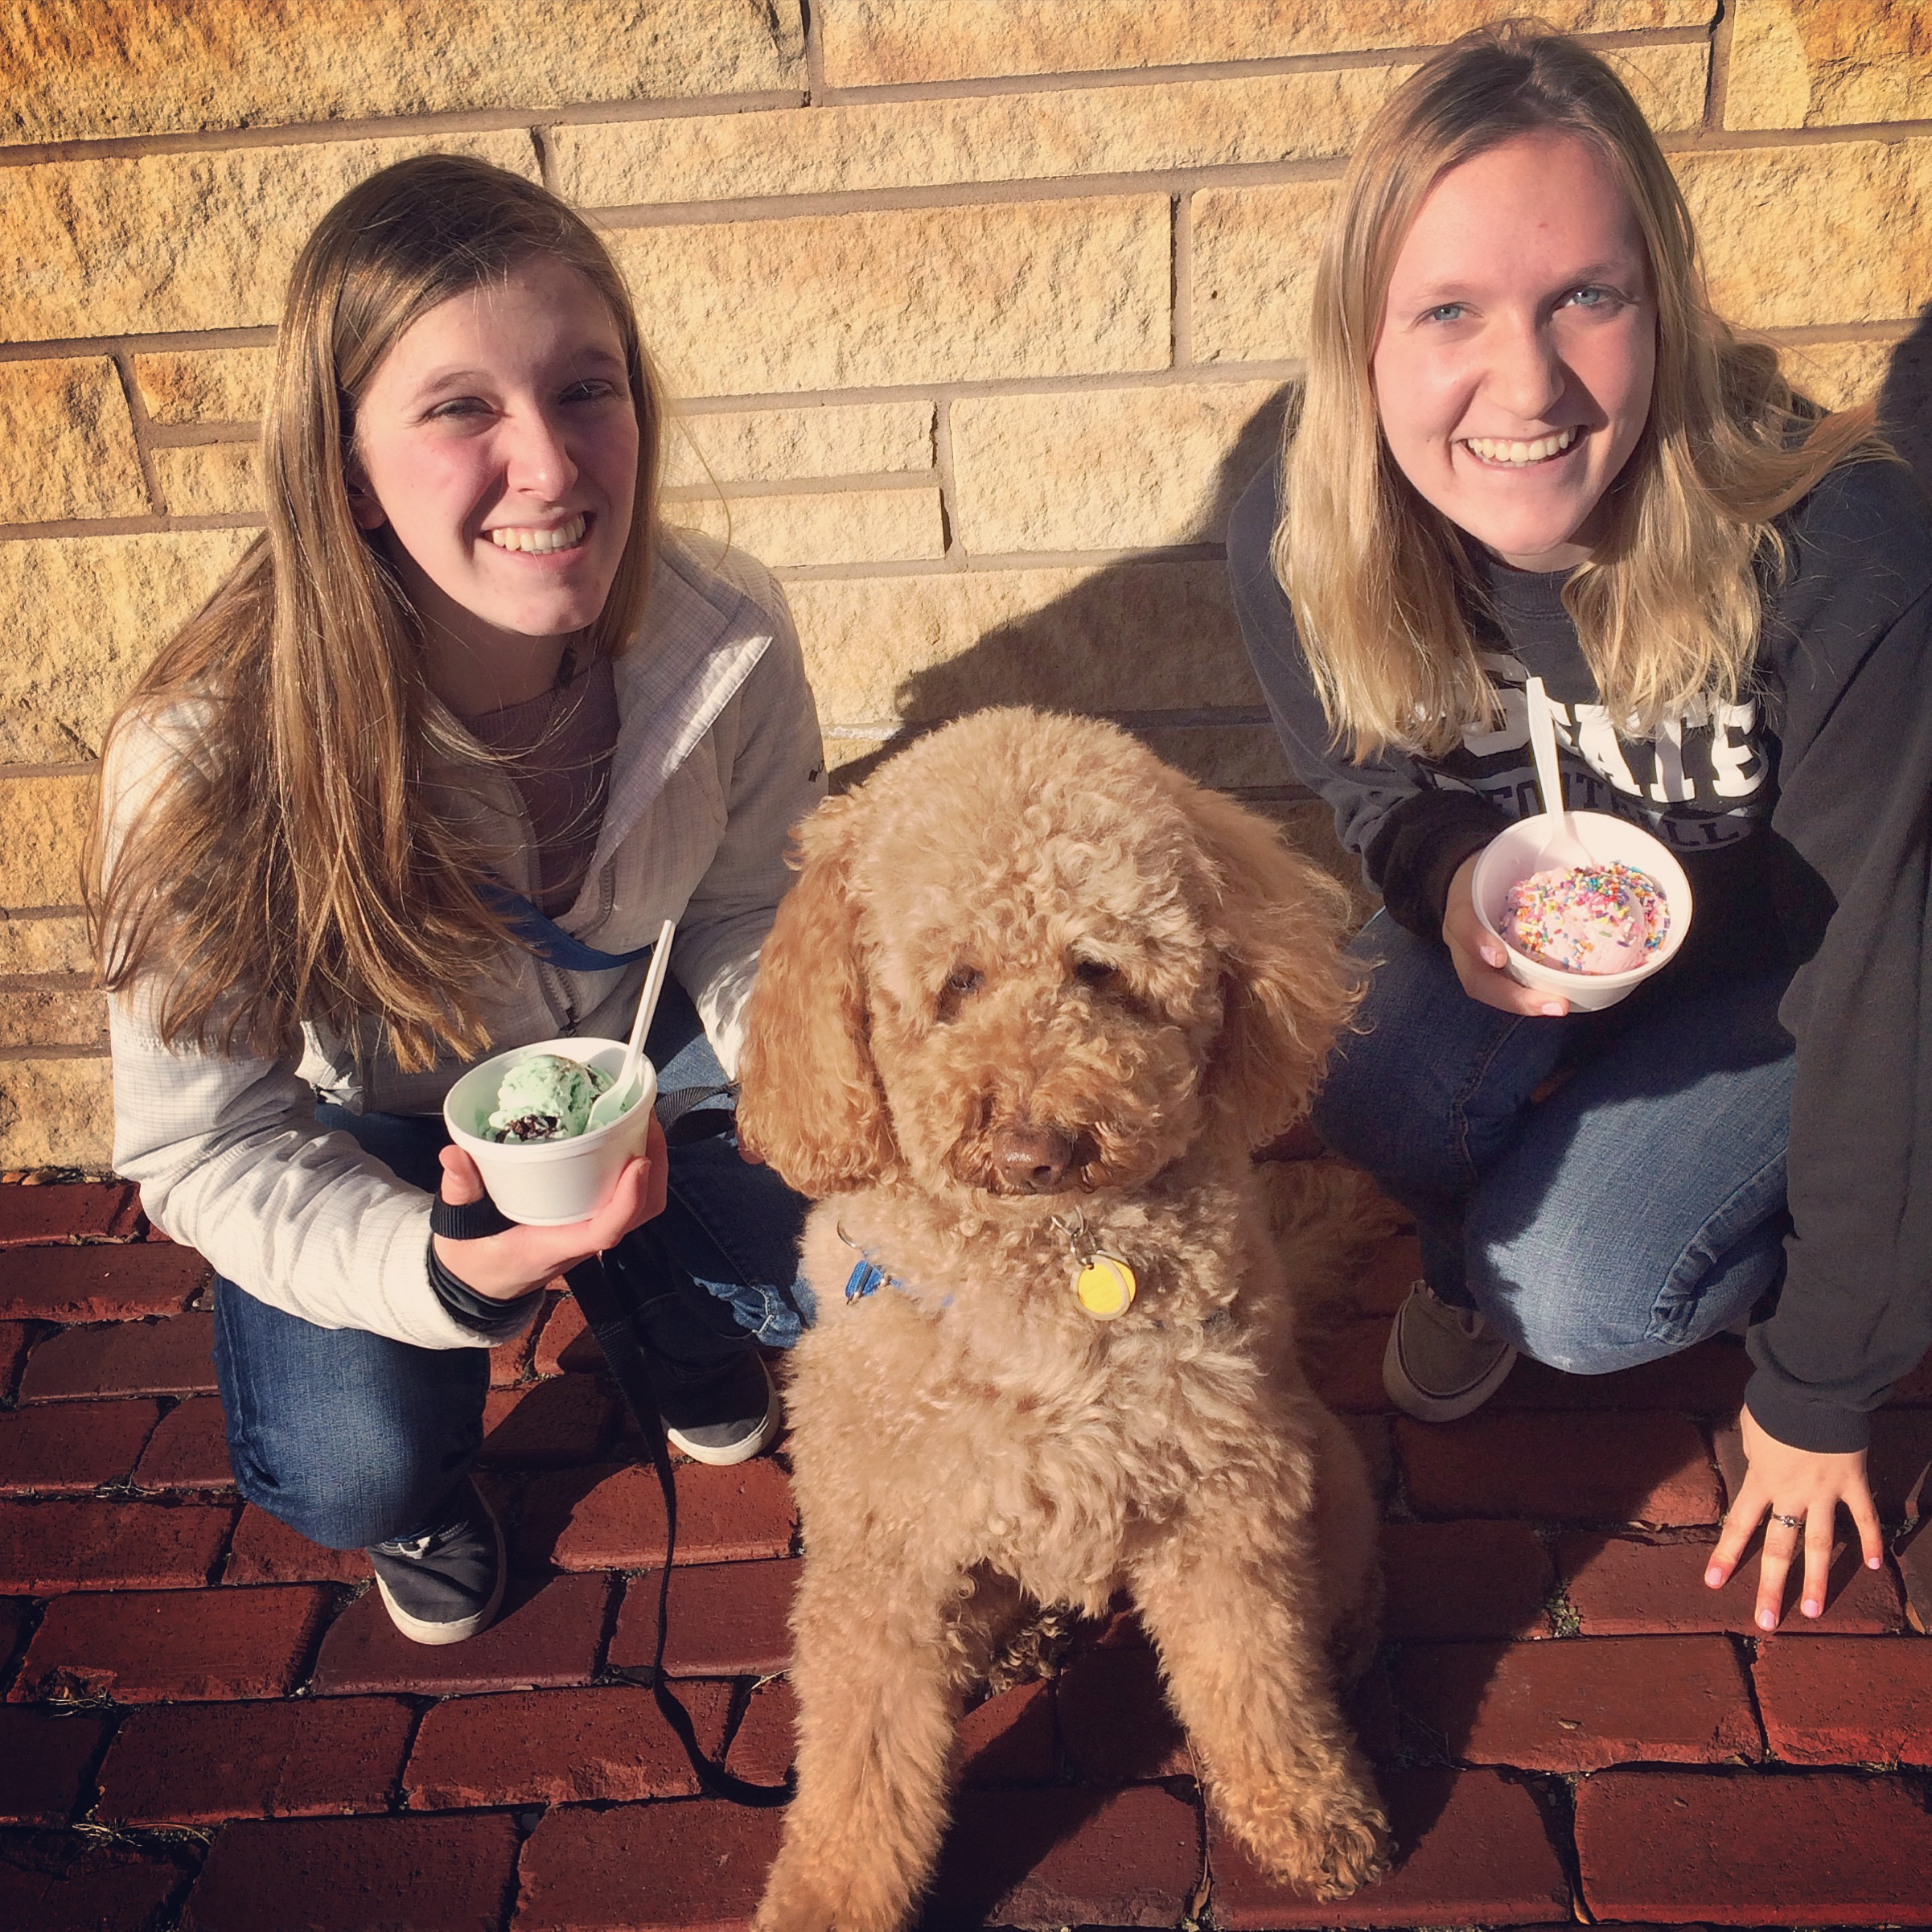 A picture from our visit with Megan.  Megan and Sarah are enjoying some ice cream and Chessie was excited to meet EVERYONE!